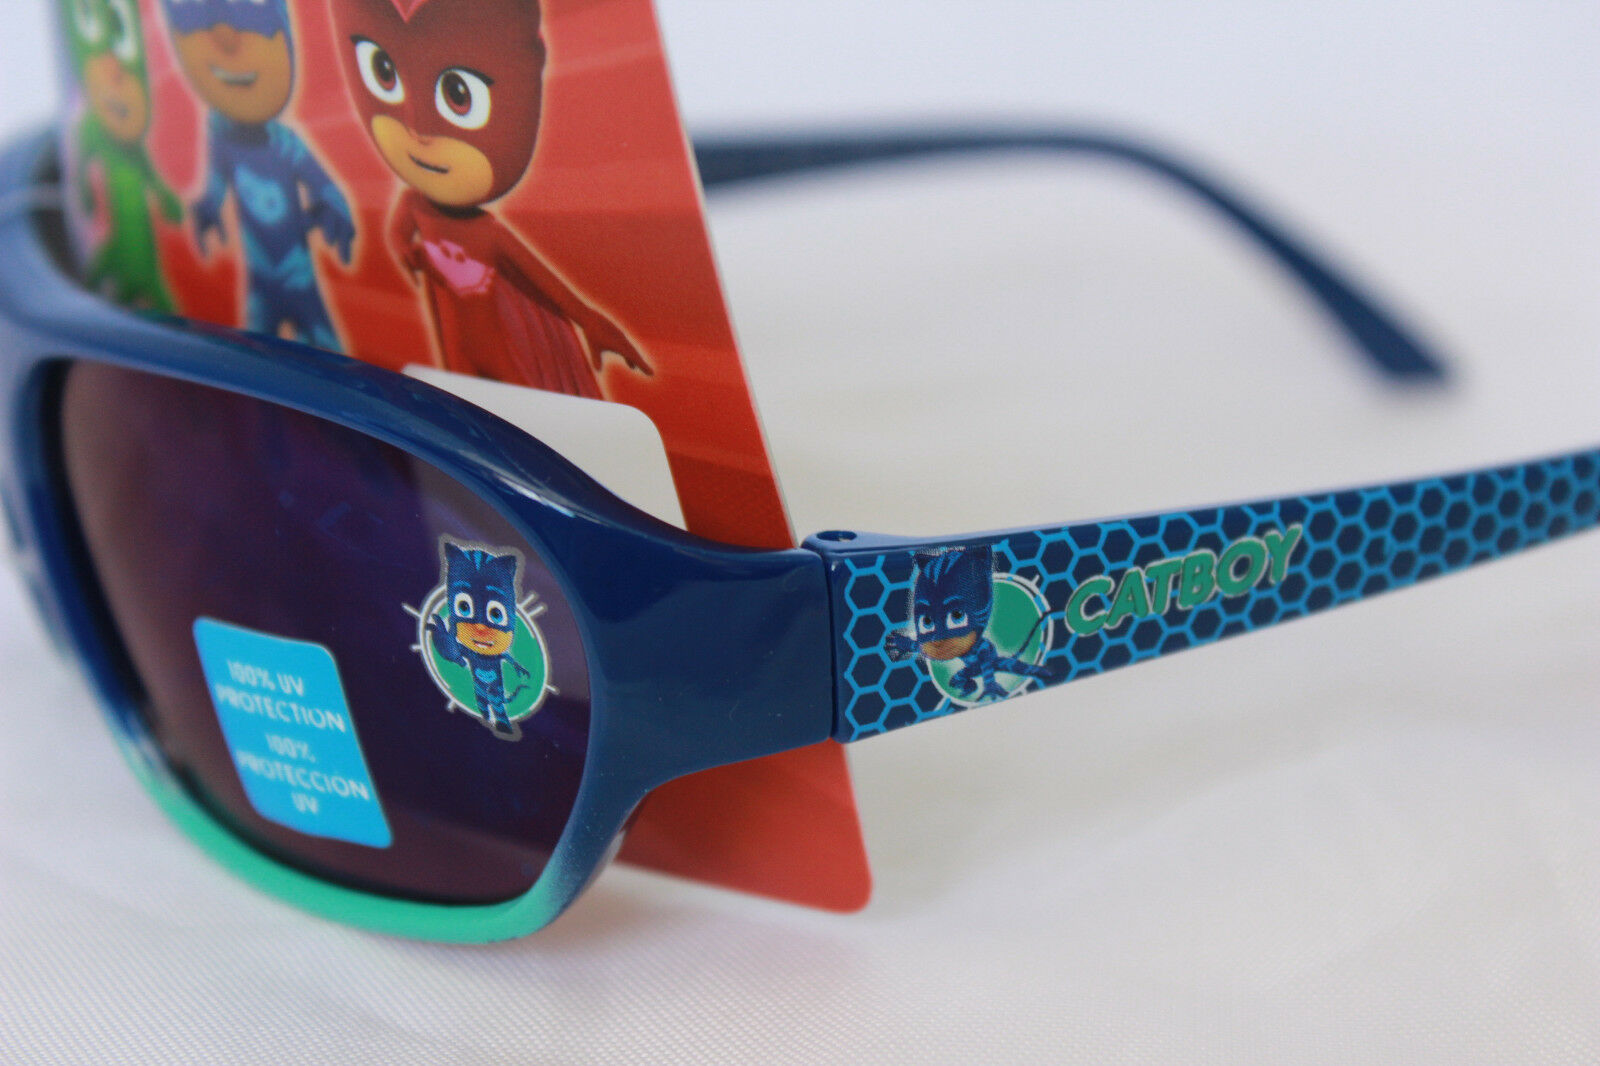 60e5e439b29 PJ Masks Connor Catboy Gekko Boys Sunglasses 100 UV Protection Kids  Children for sale online | eBay